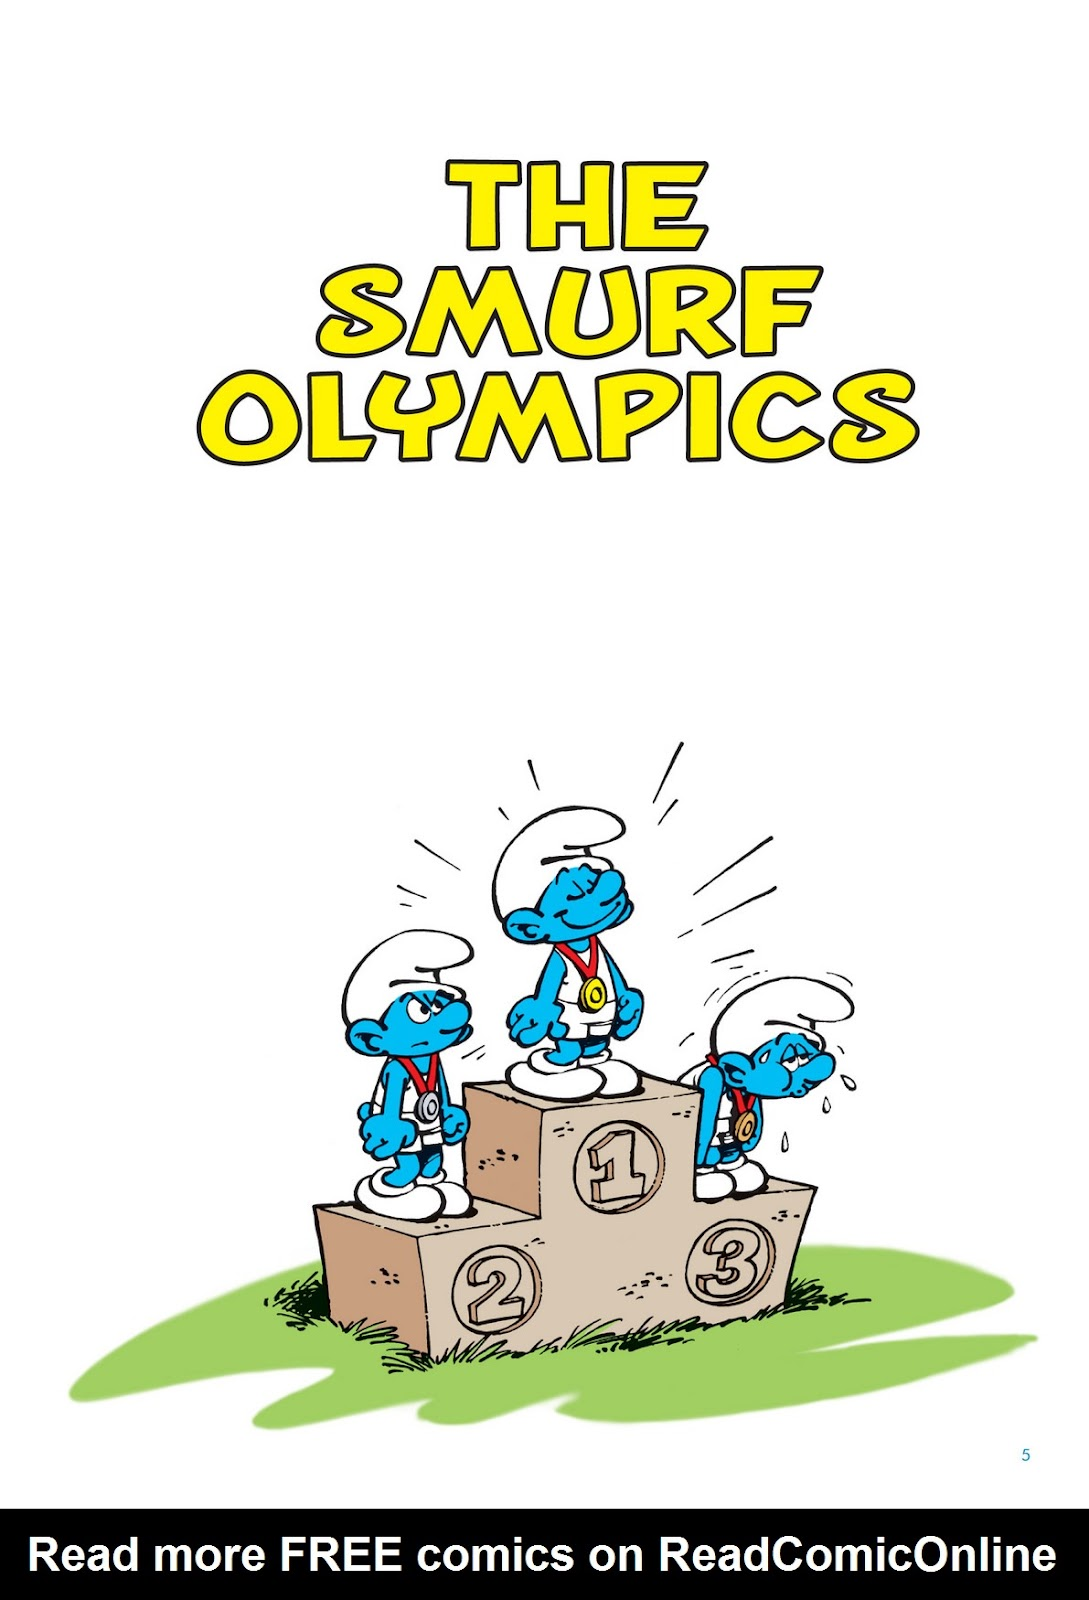 Read online The Smurfs comic -  Issue #11 - 5